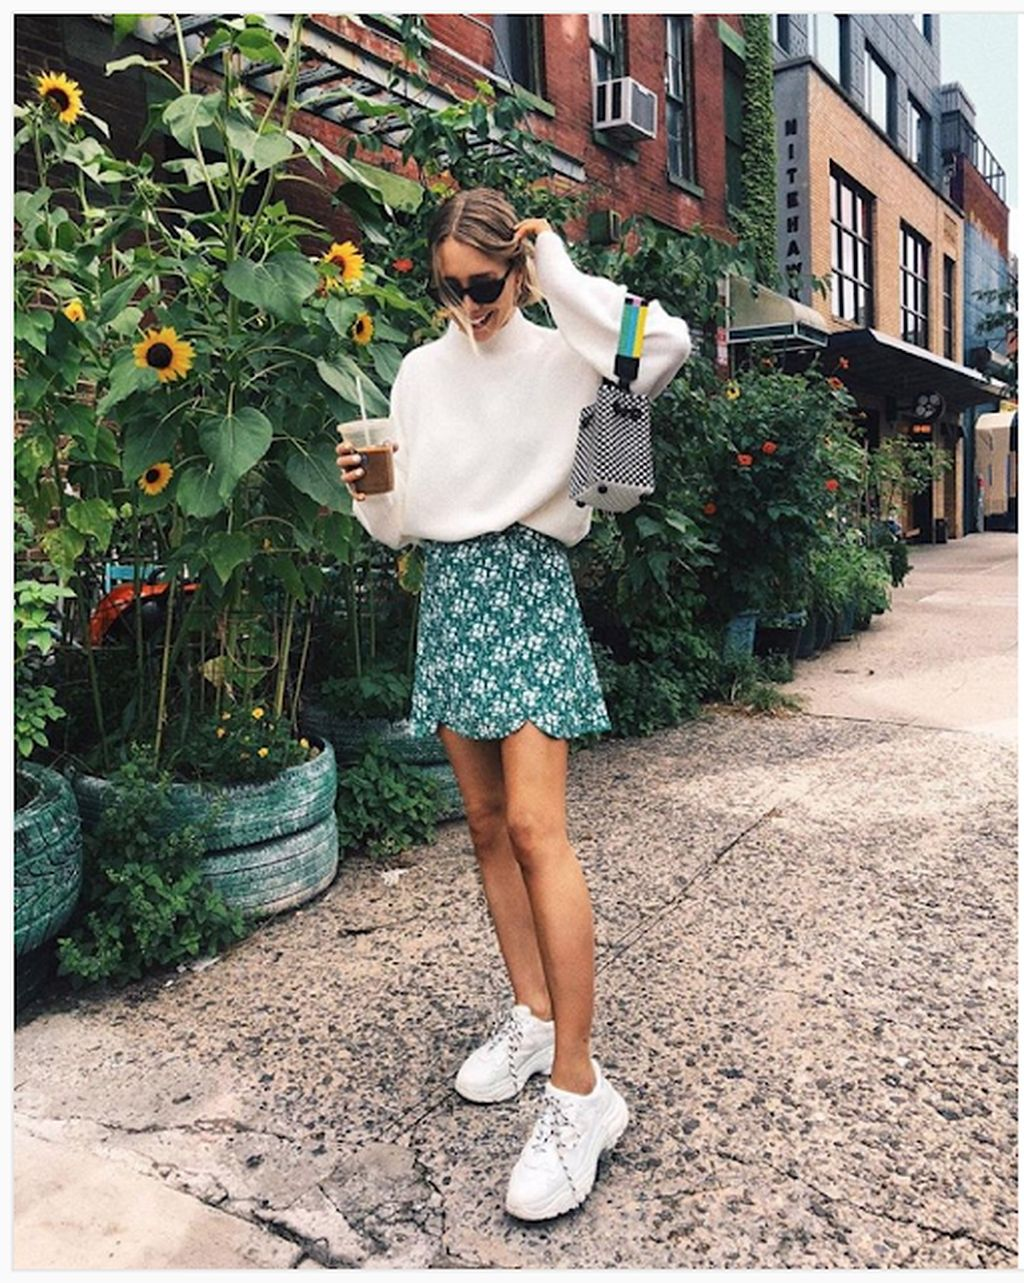 37 Charming Sneakers Shoes Ideas For Street Style 2019